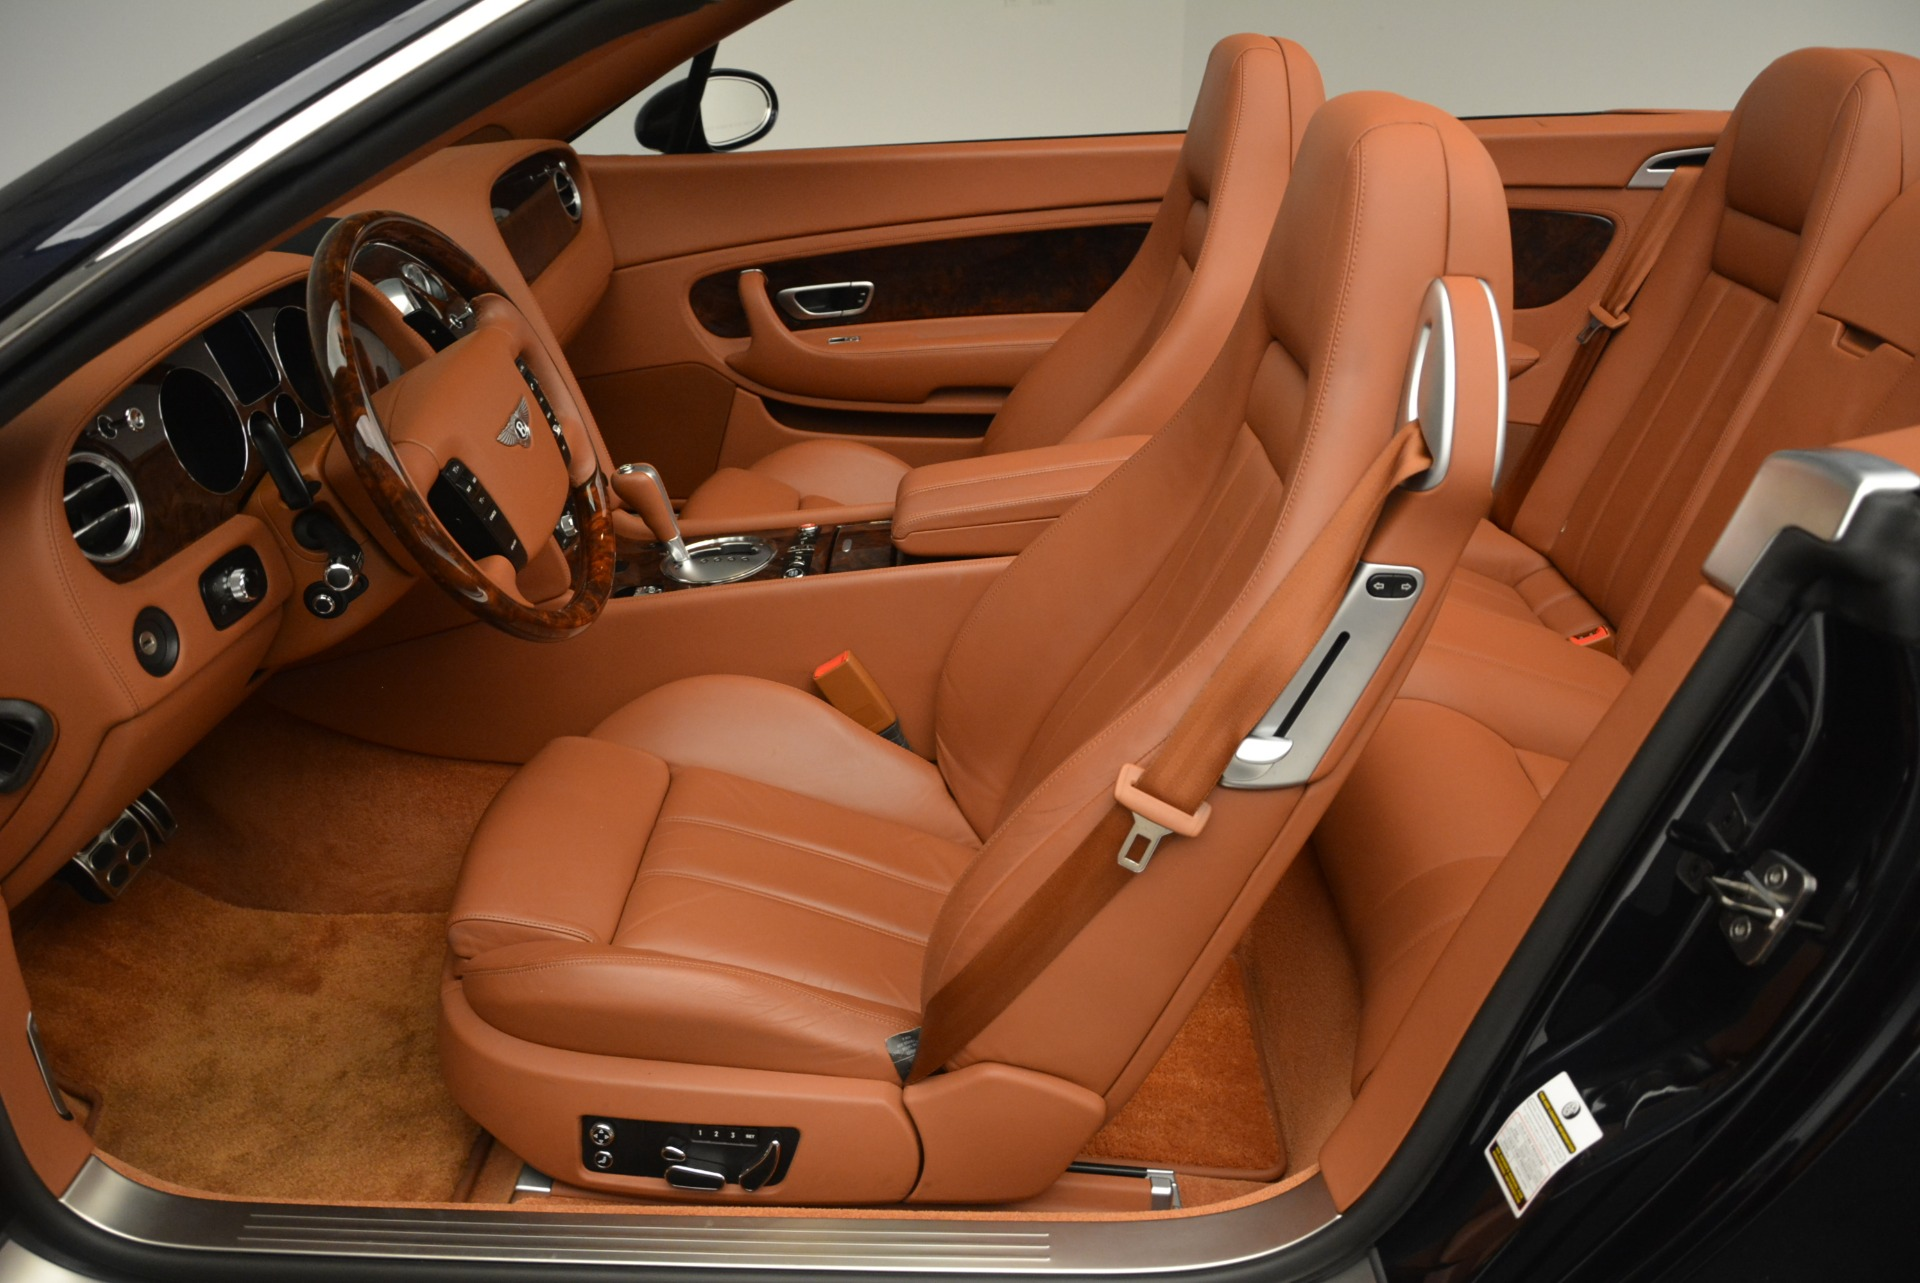 Used 2008 Bentley Continental GTC  For Sale In Westport, CT 2307_p26